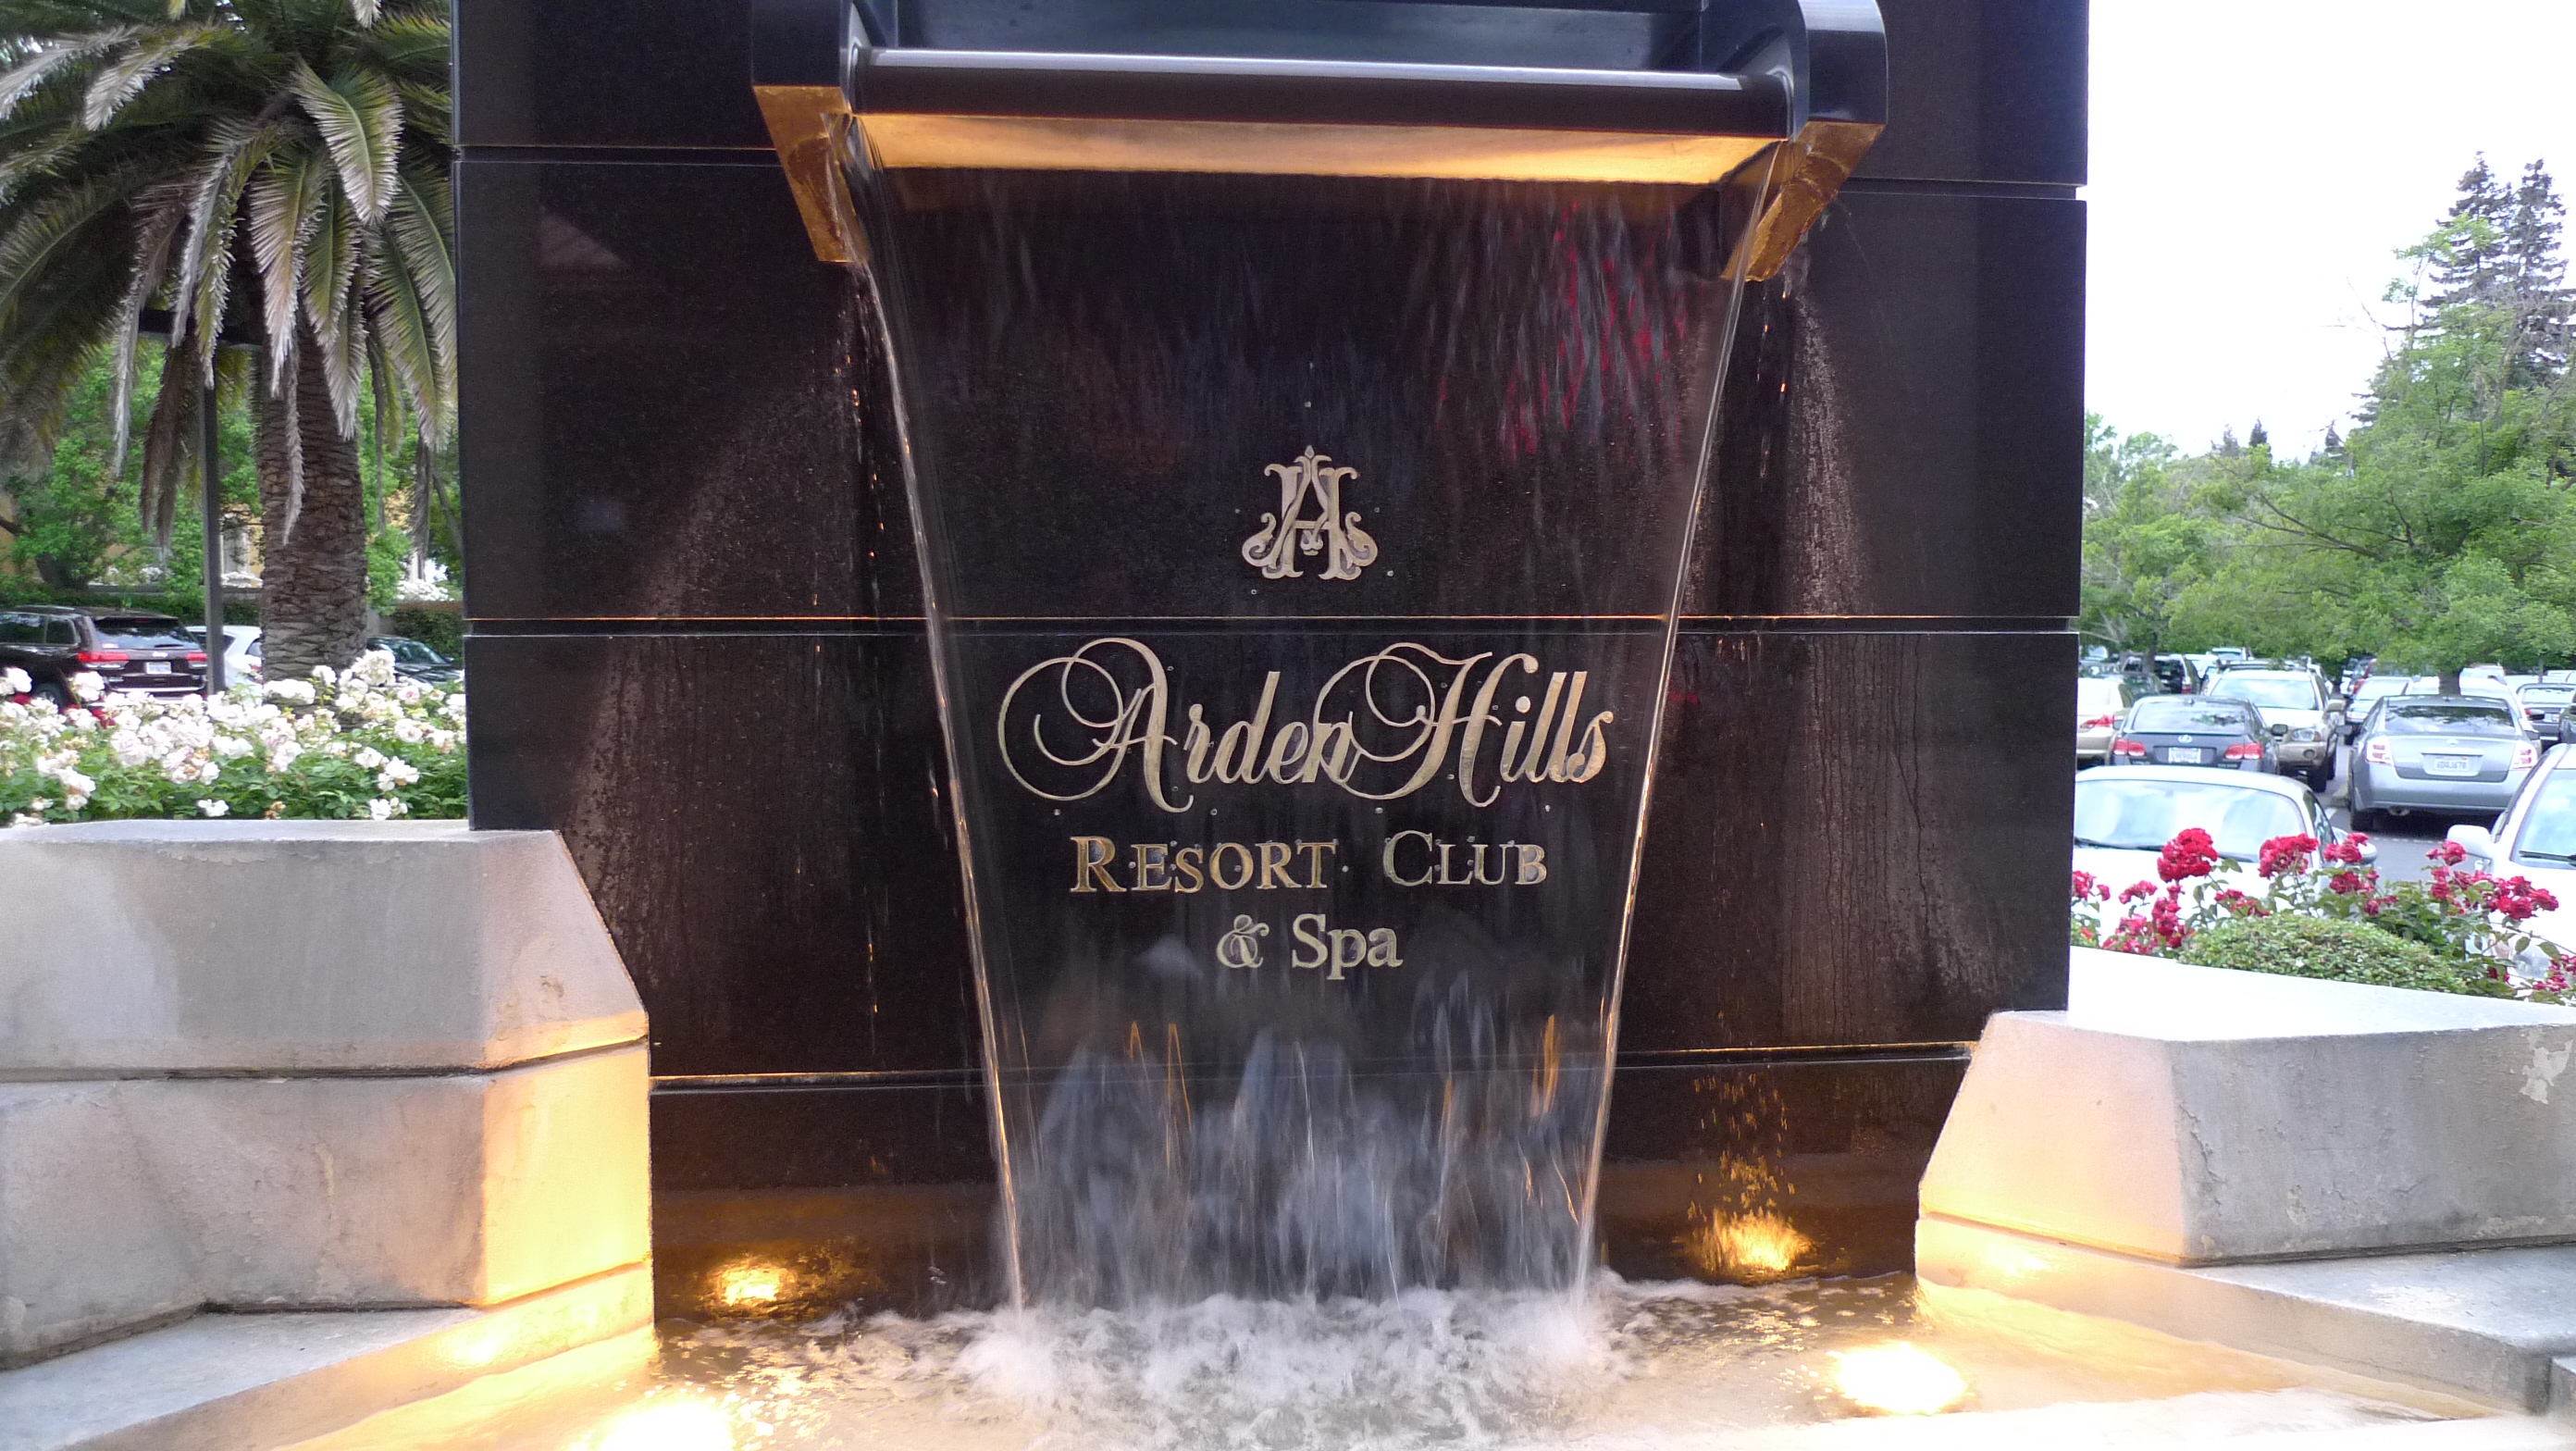 Arden Hills Resort Club Arden Arcade Sacramento CA by best top broker MLS success producer